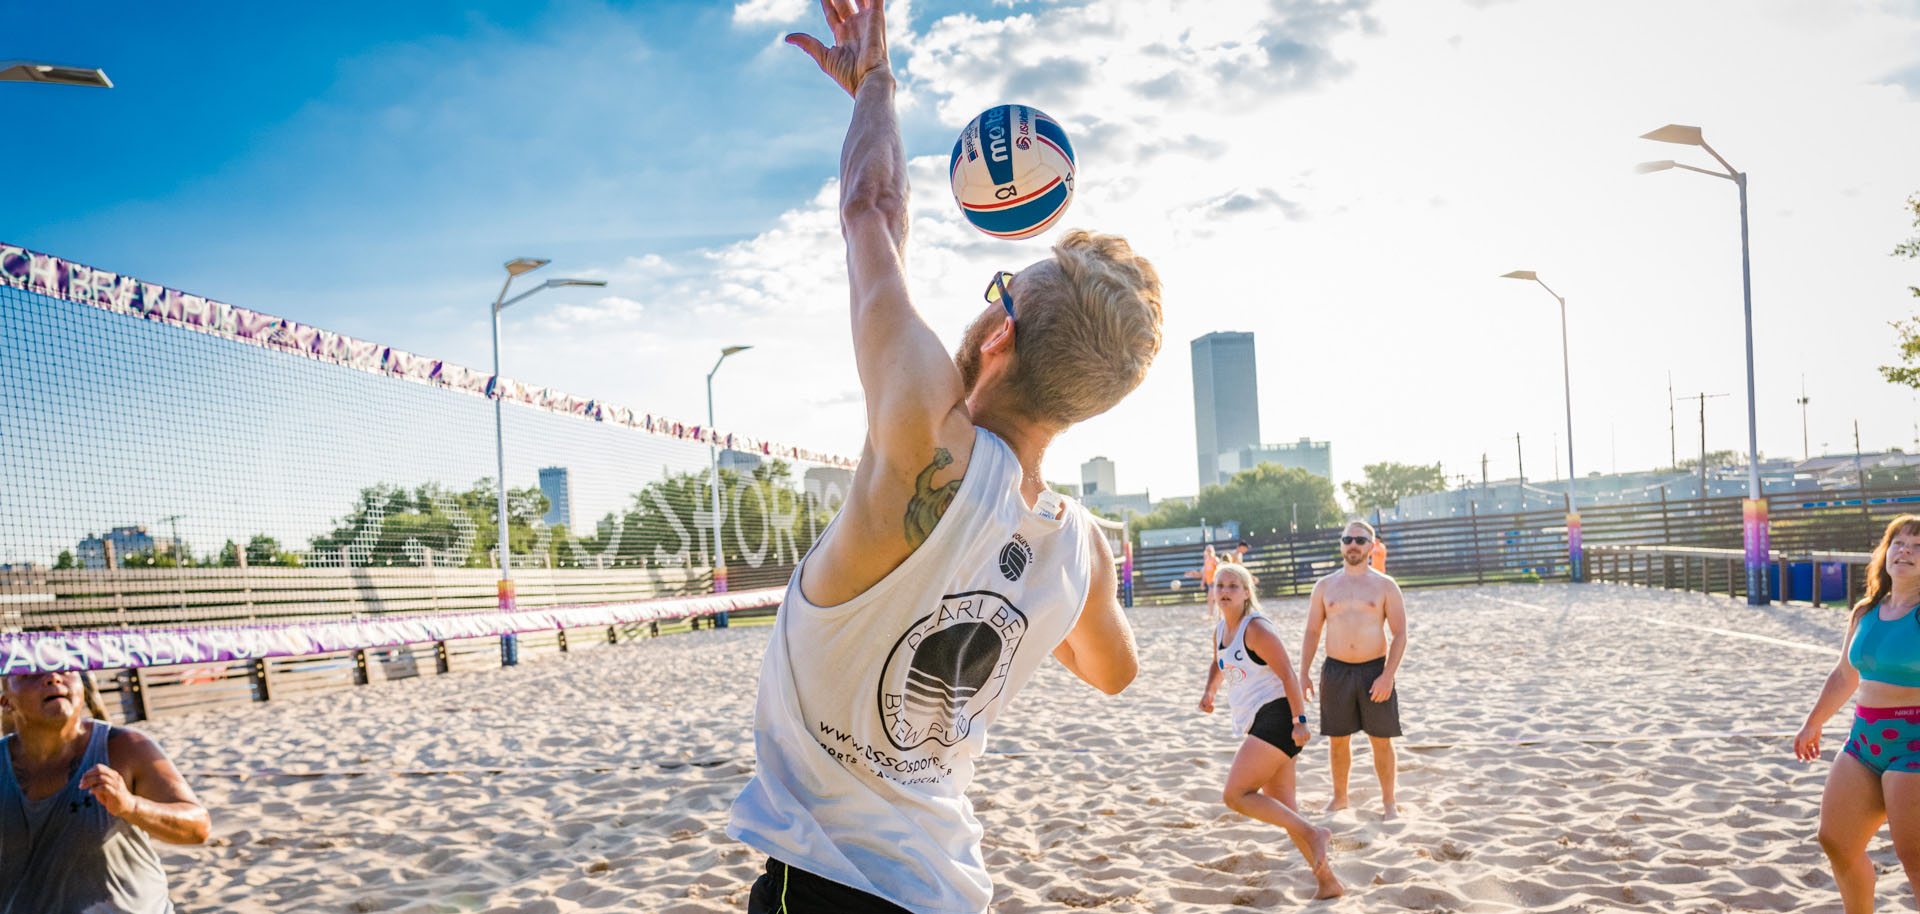 Sand volleyball players in action outside at Pearl Beach Brew Pub